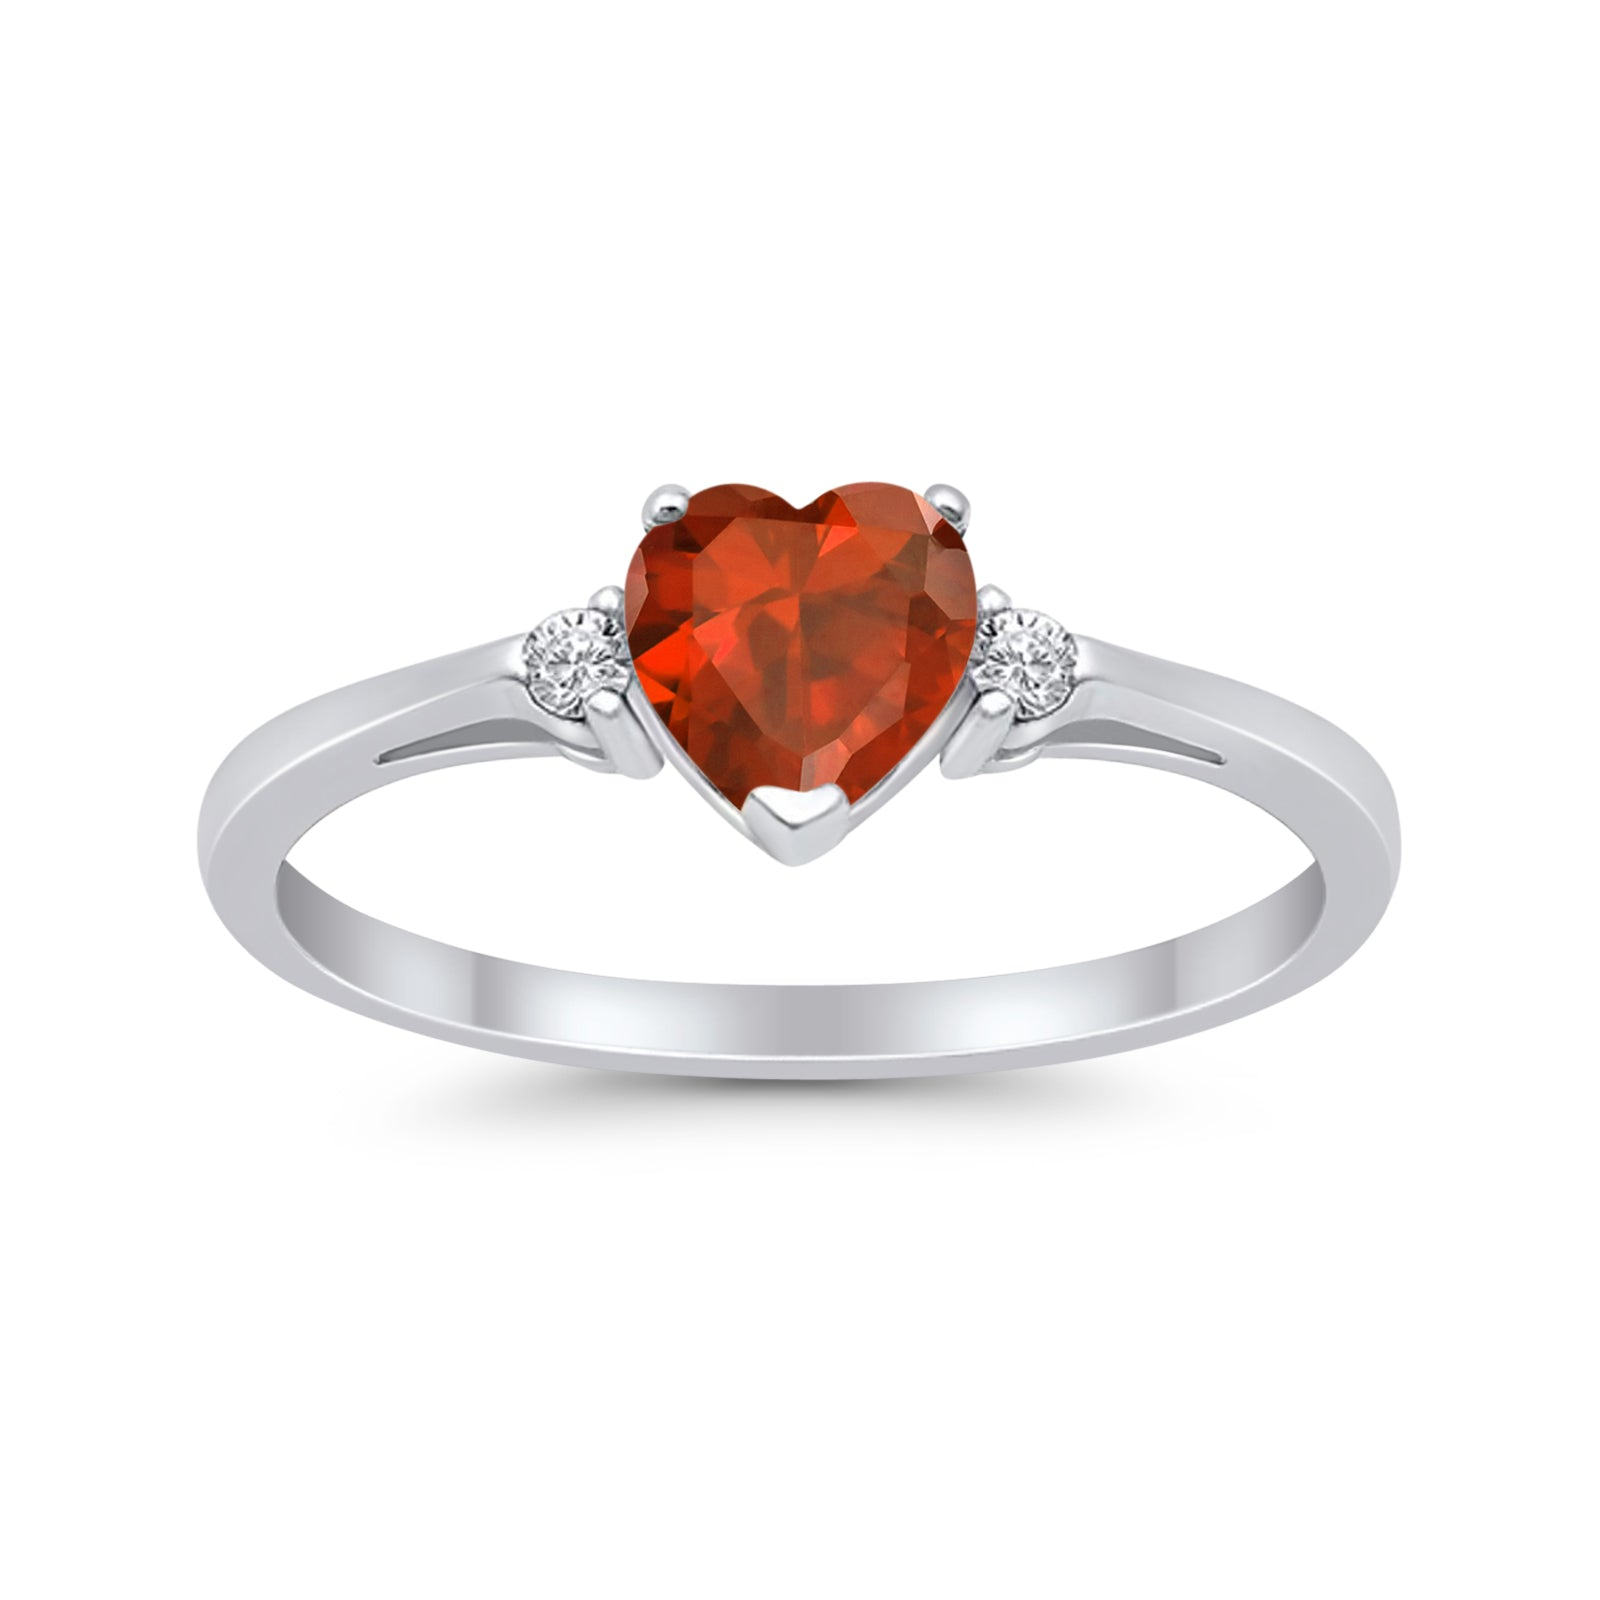 Heart Promise Engagement Ring Simulated Garnet CZ 925 Sterling Silver